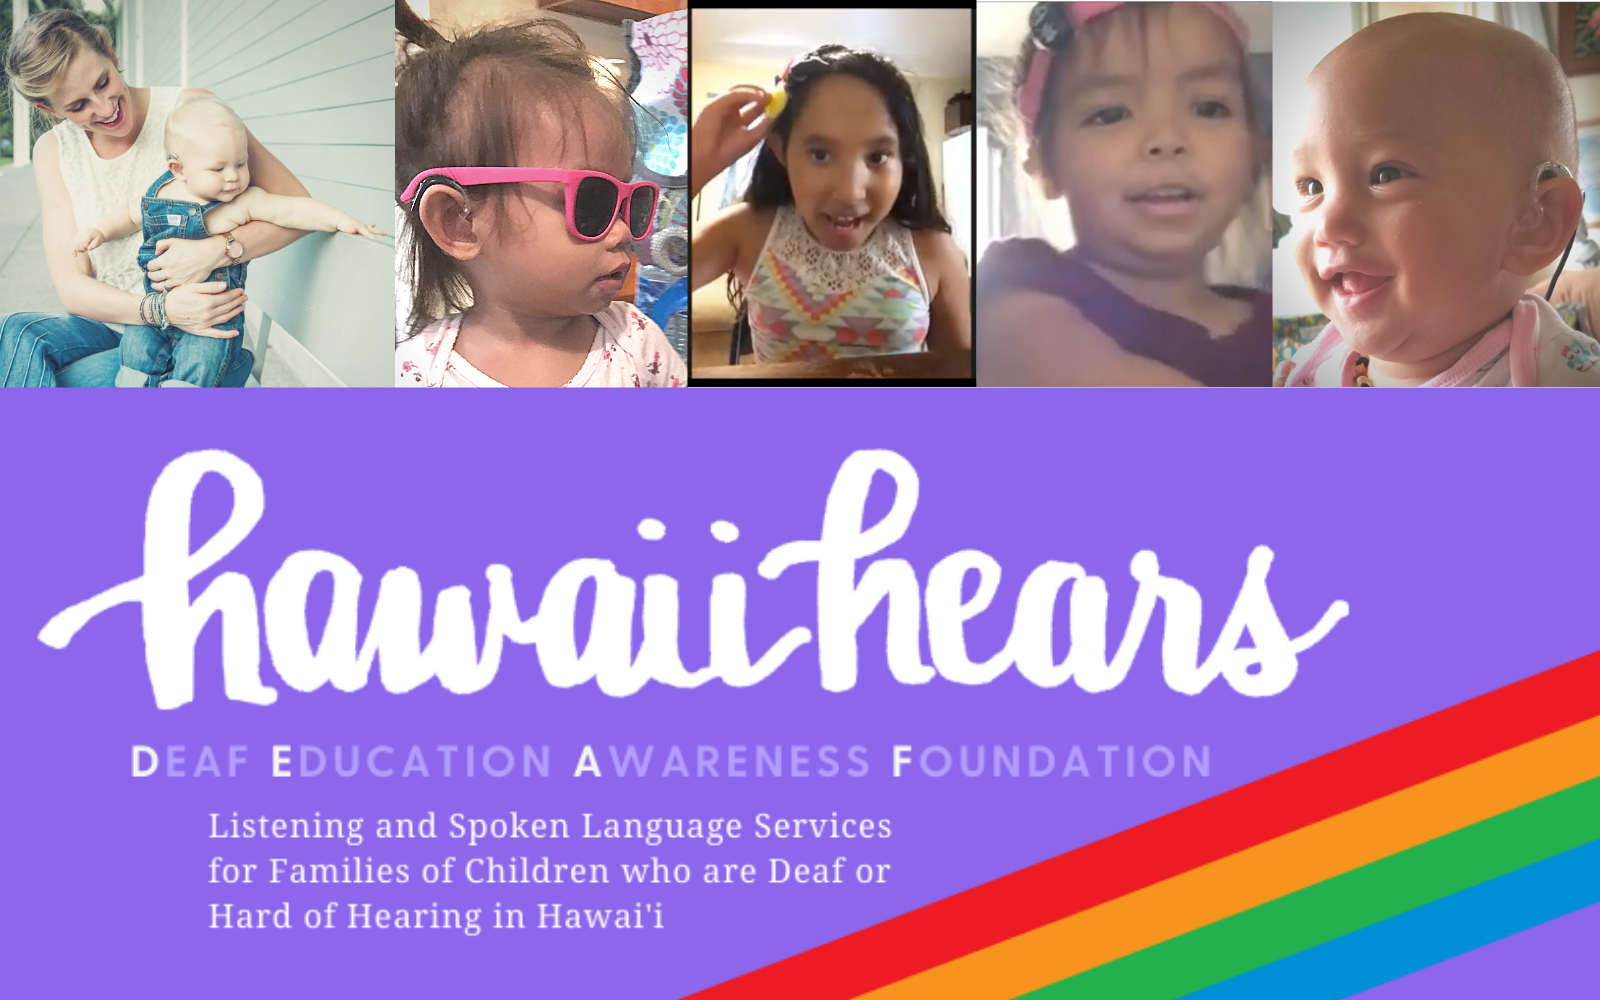 Make a difference in the life of deaf children and their families in Hawaii image